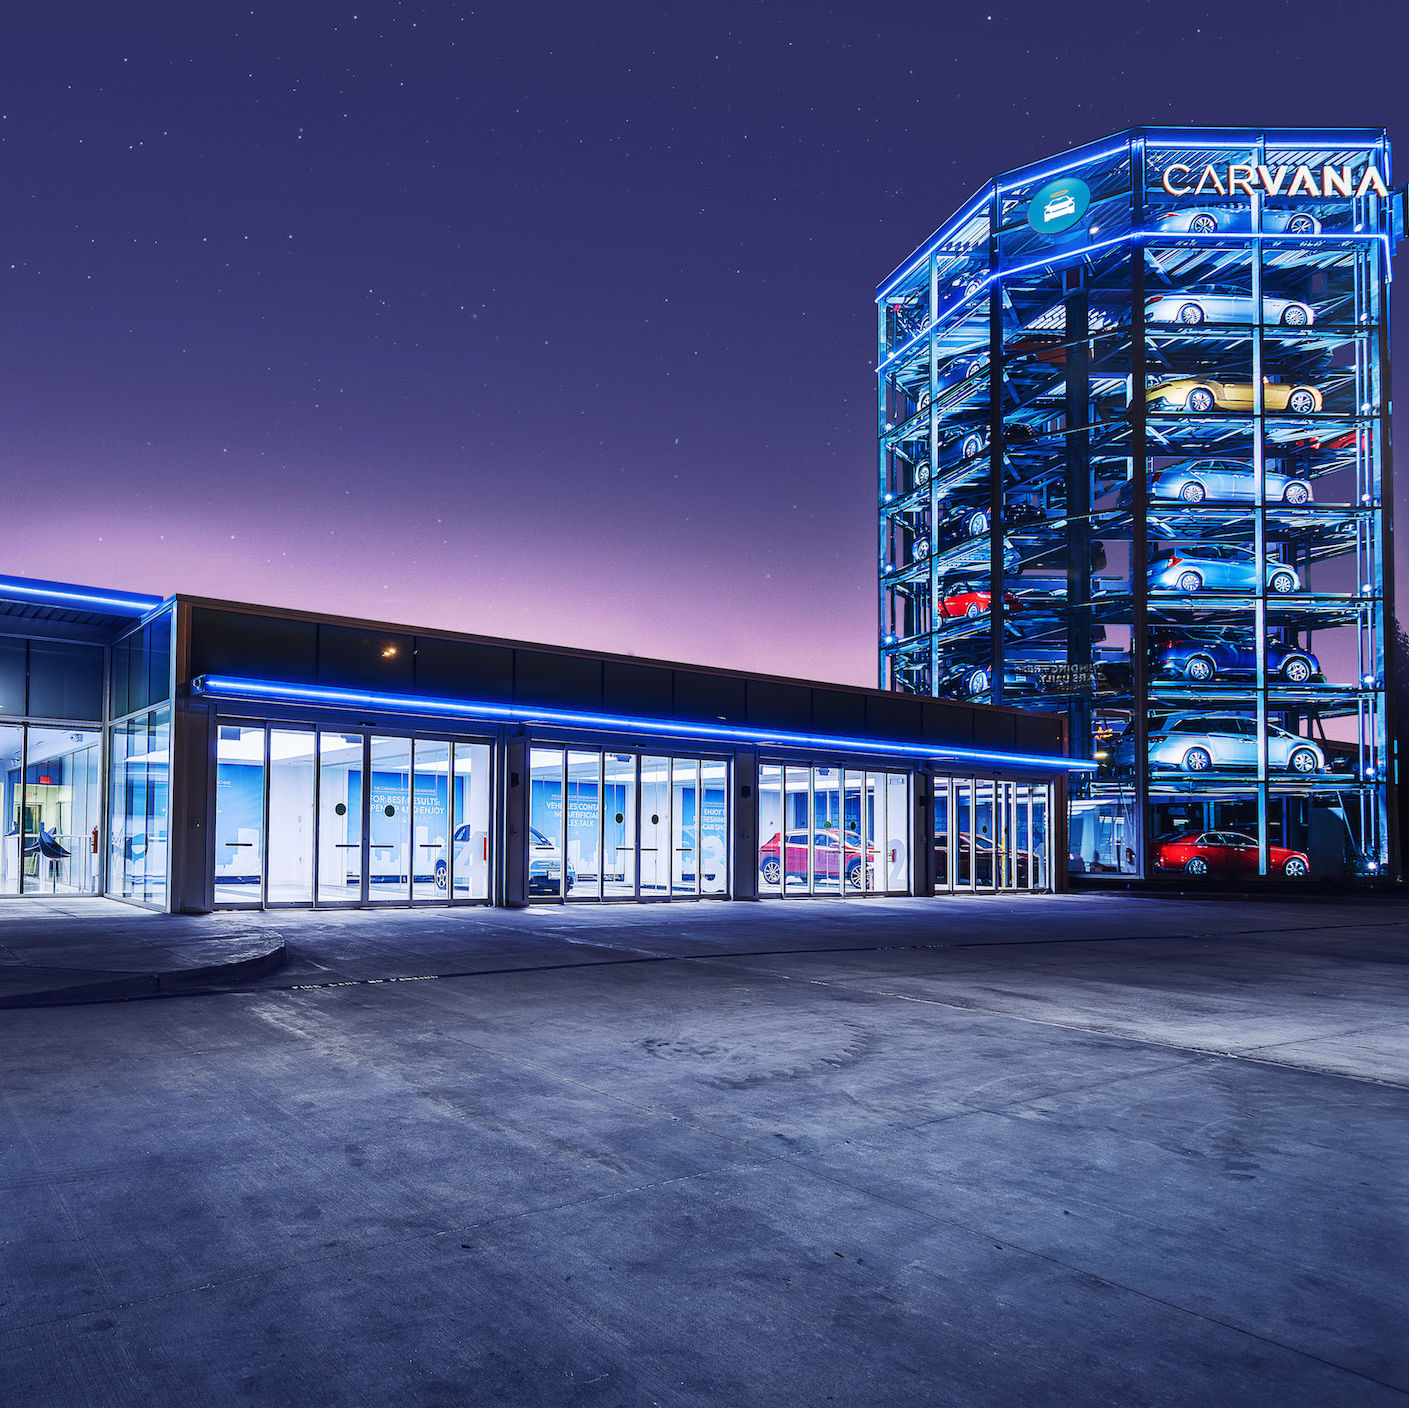 Carvana houston 10204 wip2 low res zfh90c